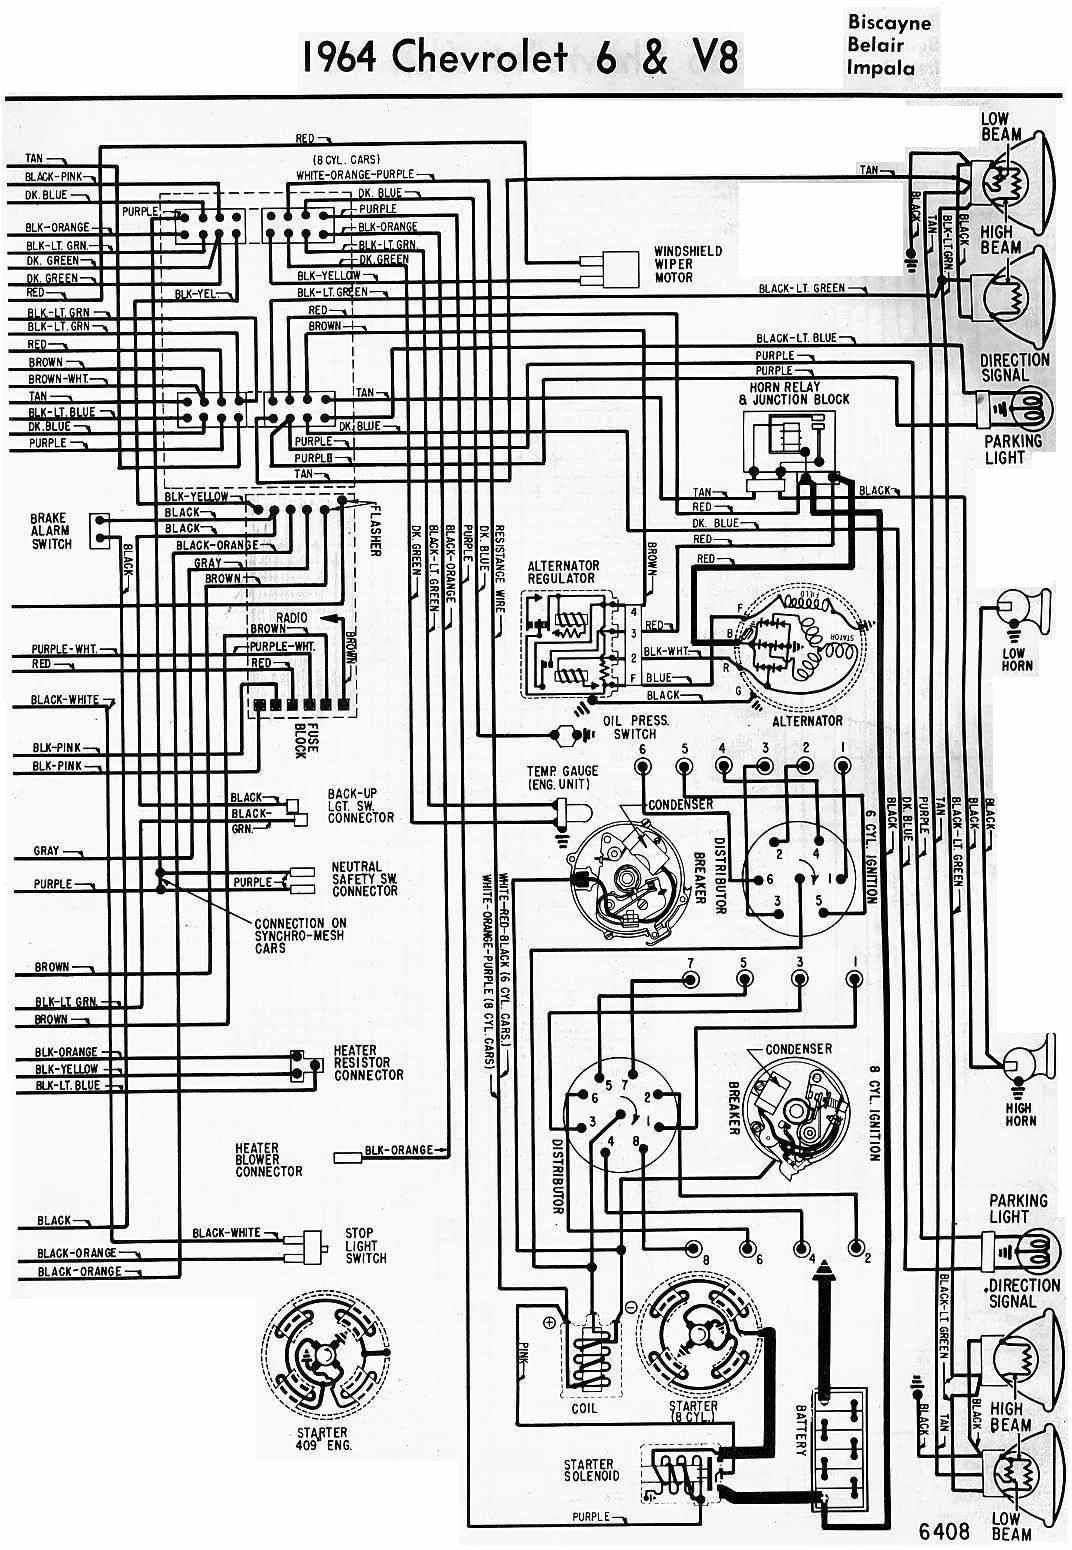 1964 Chevy Nova Wiring Diagram Rcd Spur Electrical Of Chevrolet 6 And V8 All